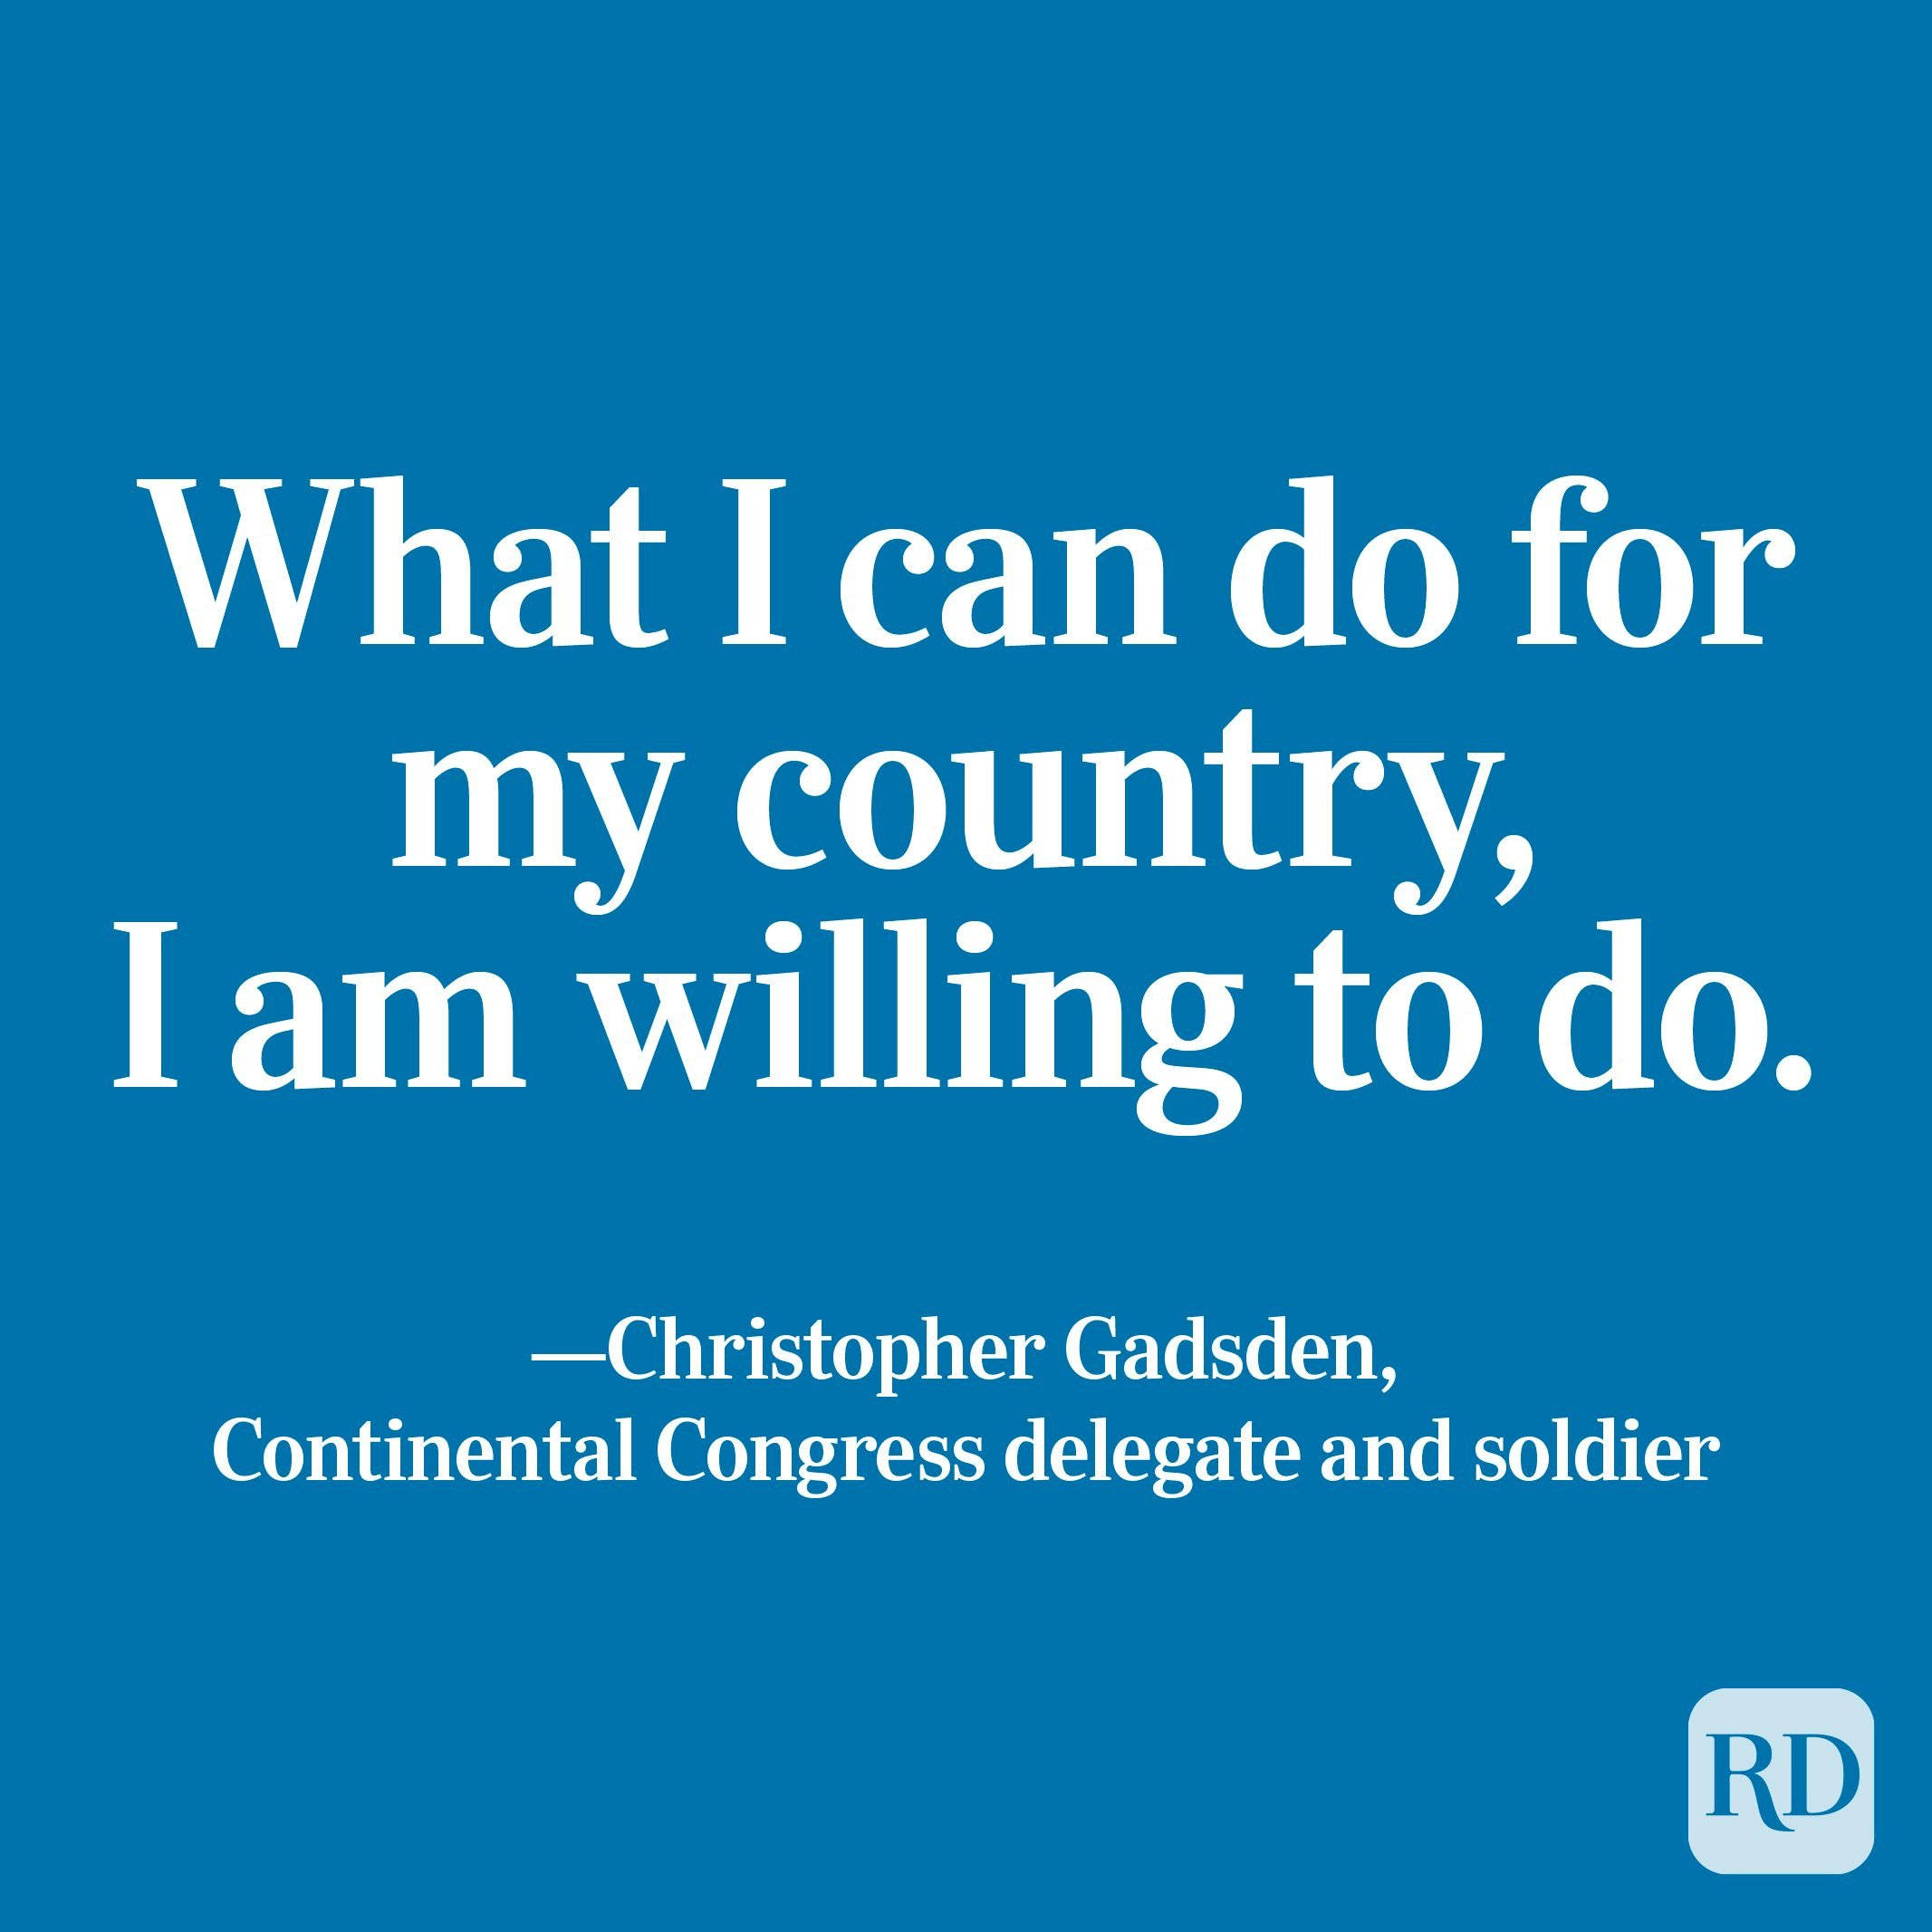 """""""What I can do for my country, I am willing to do."""" —Christopher Gadsden, Continental Congress delegate and soldier"""